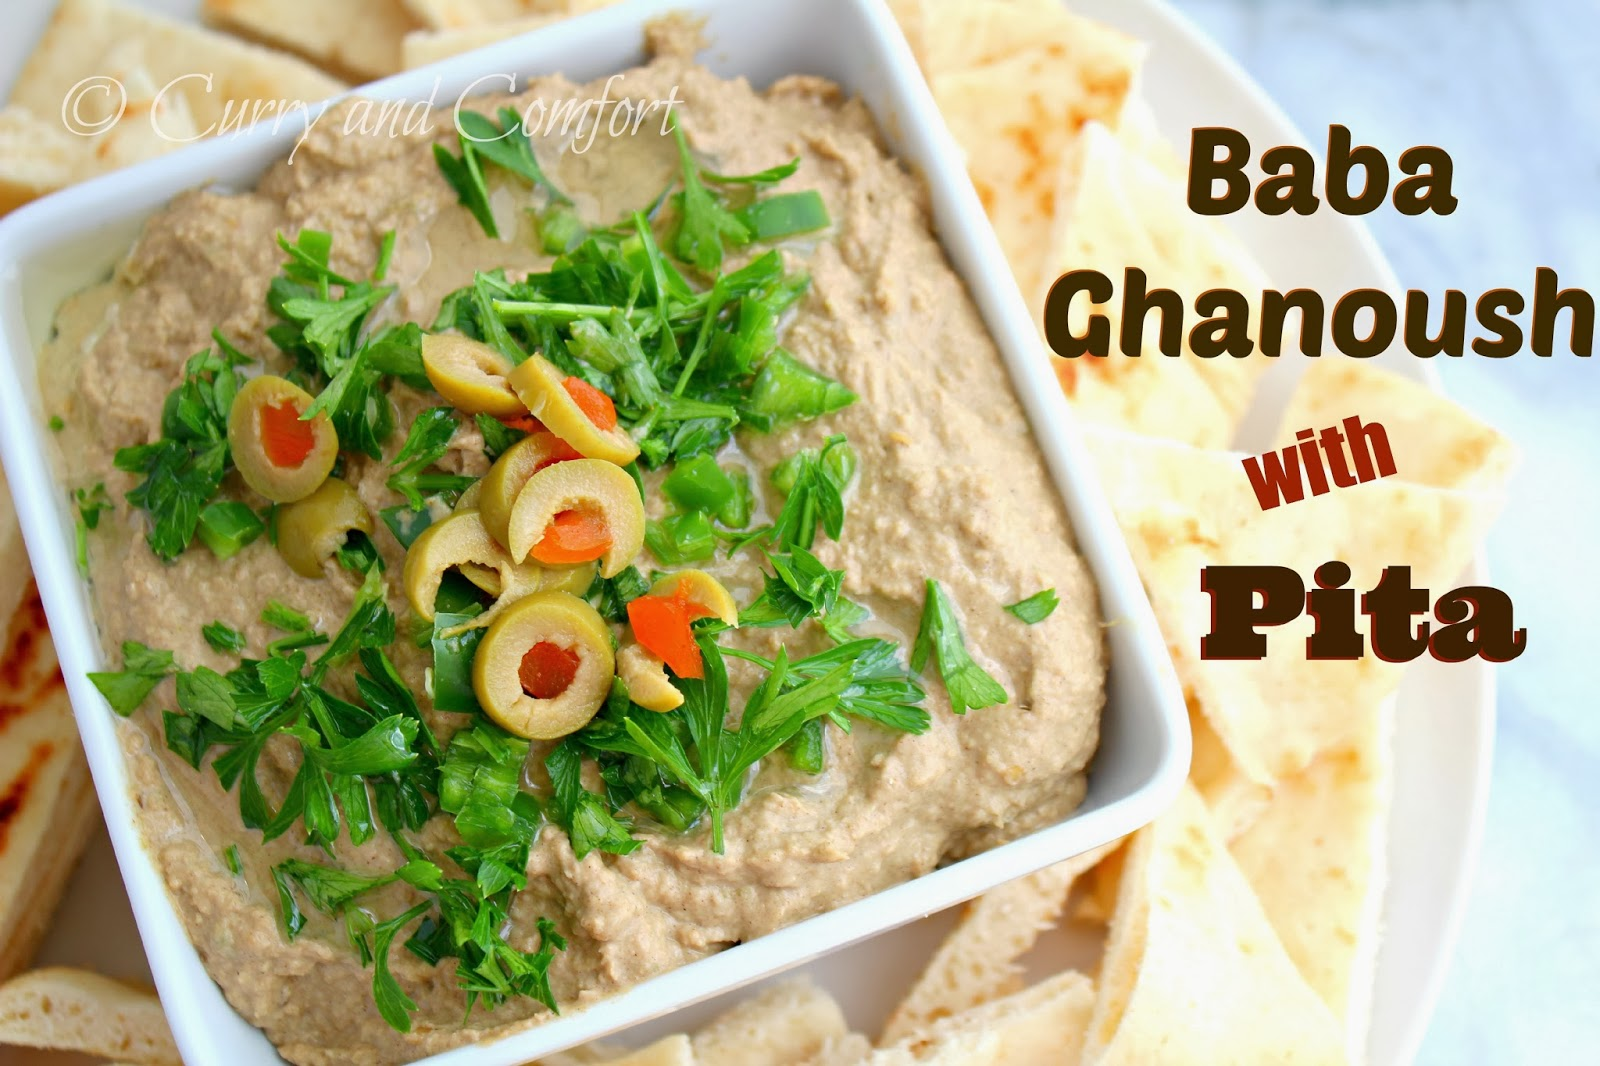 Curry and Comfort: Baba ghanoush (Vegetarian Eggplant Dip)